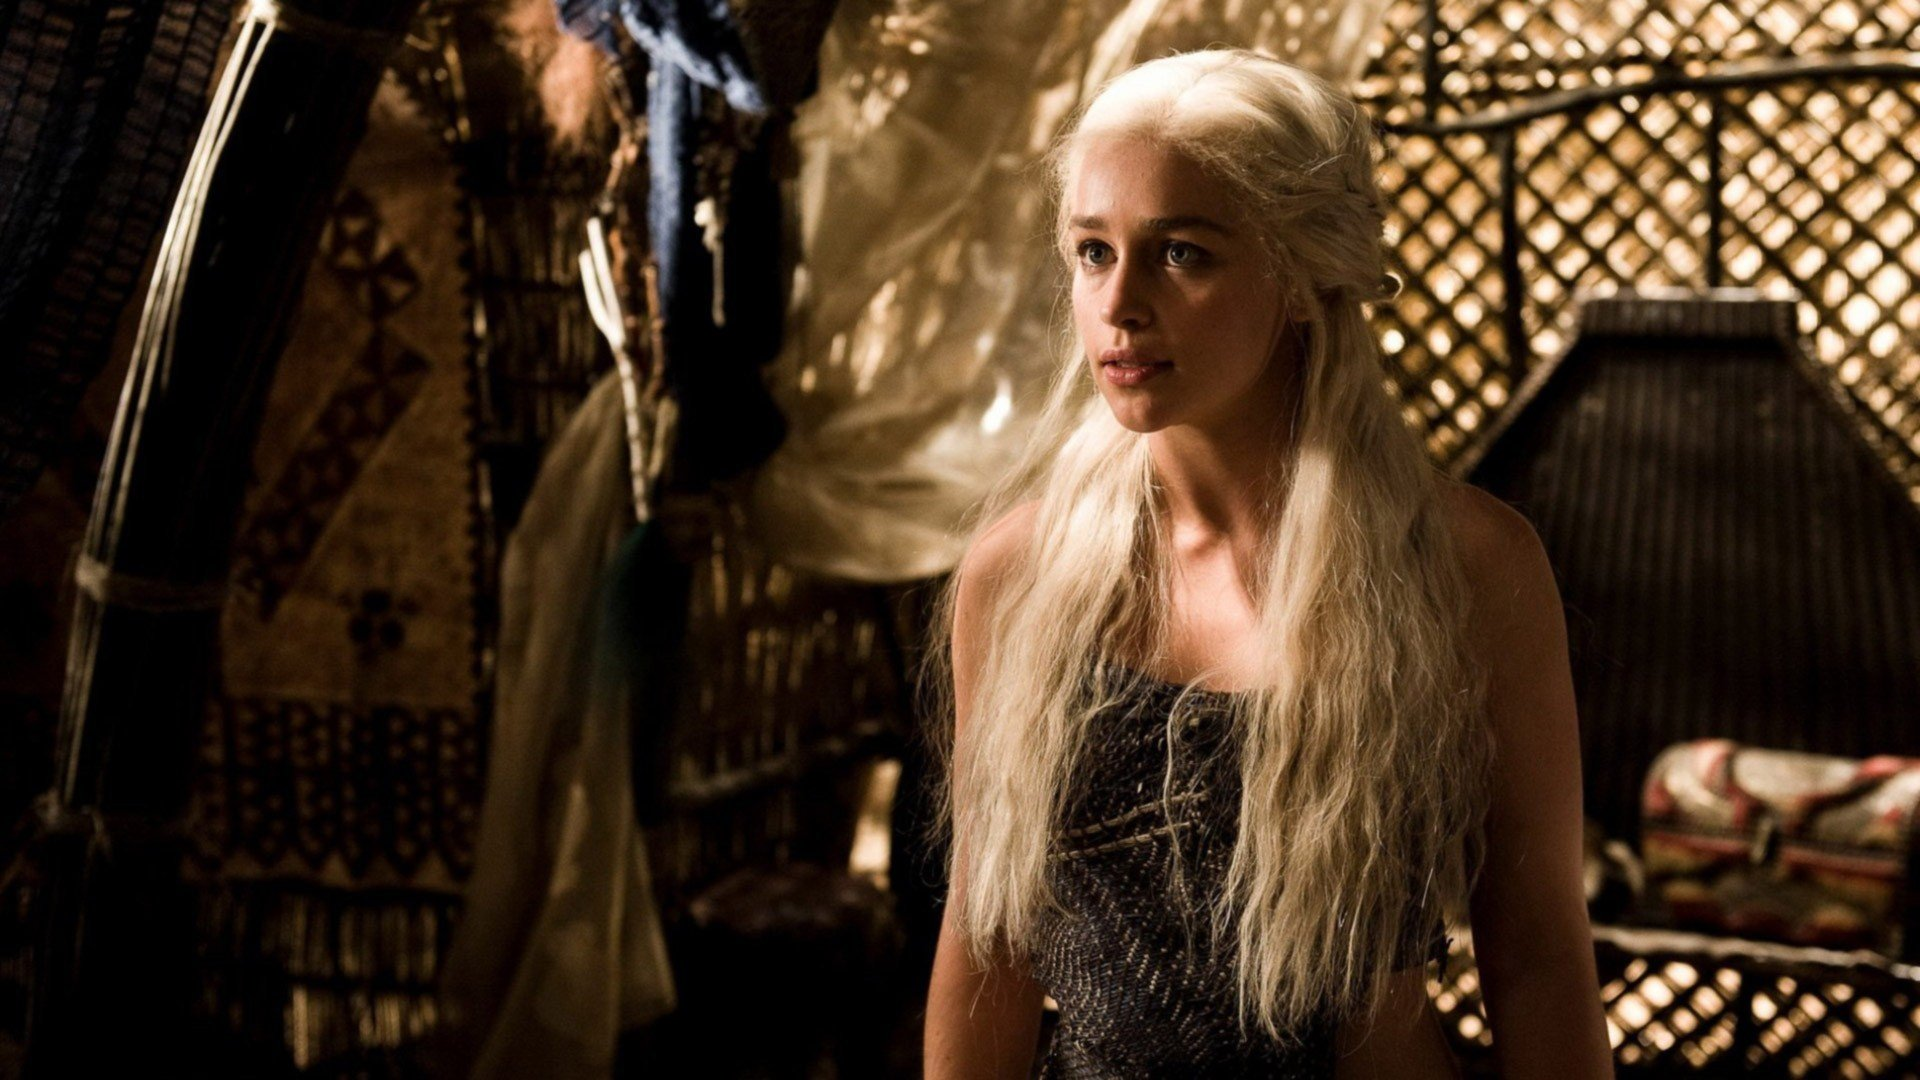 Emilia Clarke Game Of Thrones Wallpaper: Game Of Thrones, Emilia Clarke HD Wallpapers / Desktop And